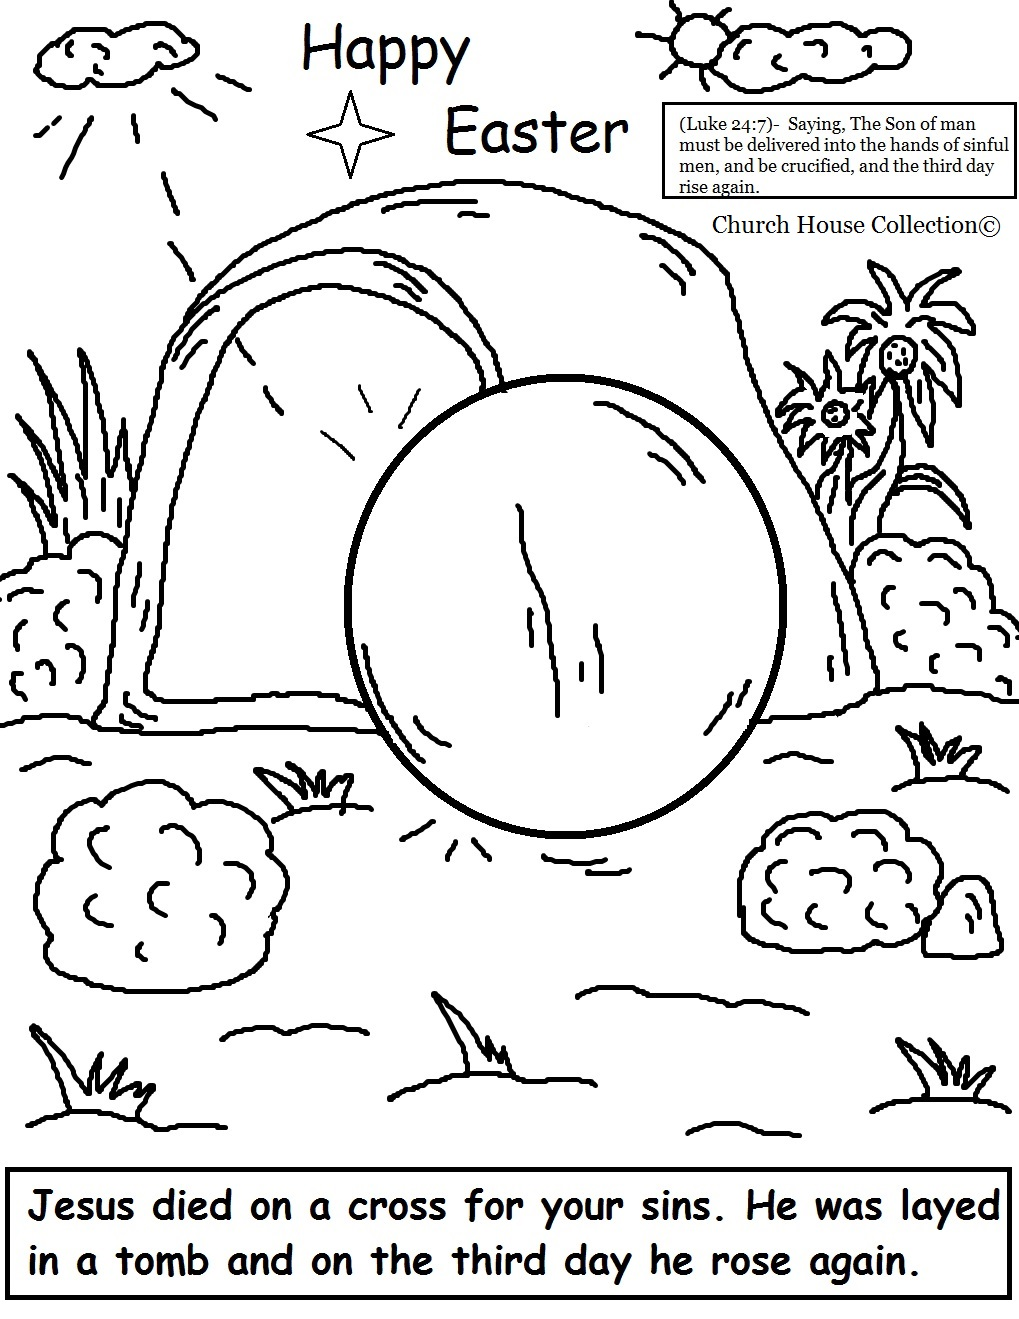 Easter Coloring Pages Resurrection Tomb Page By Church House CollectionC From